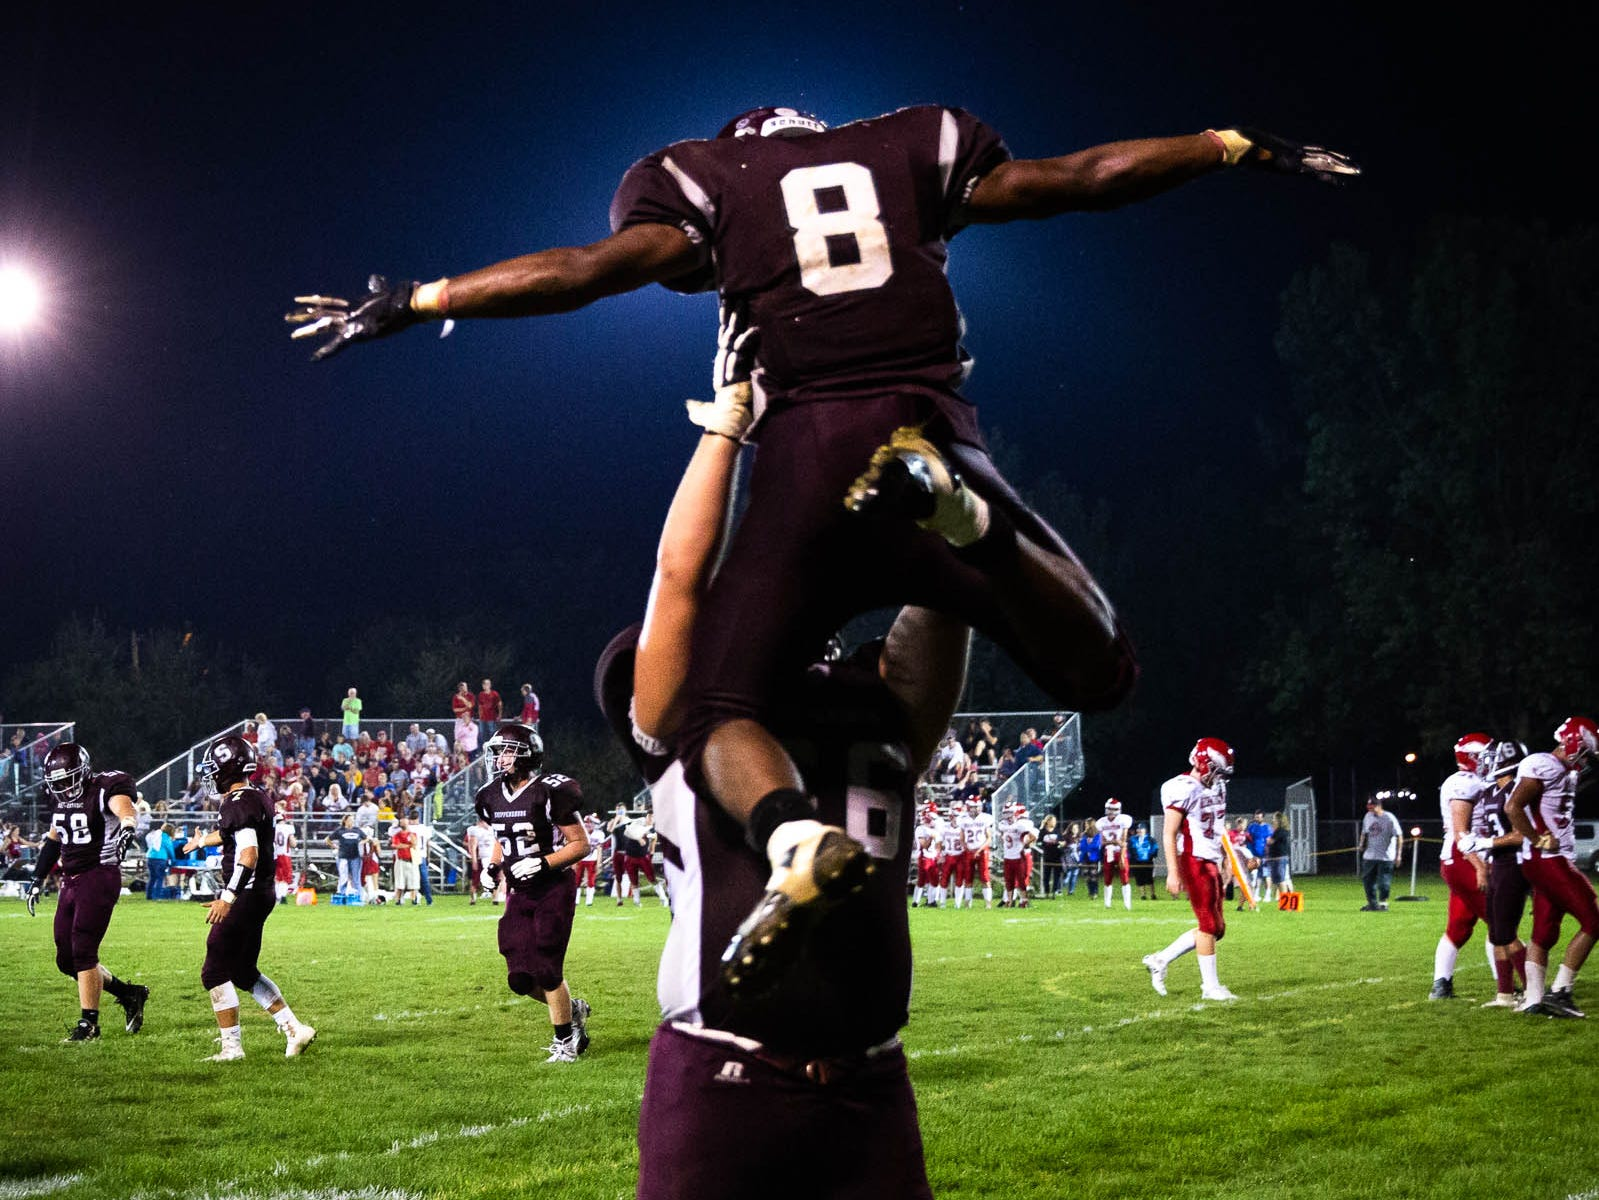 Shippensburg's Adam Houser (8) is lifted into the air by Shippensburg's Trey Lynch (66) after Houser scored a touchdown during a football game between Shippensburg and Bermudian Springs, Friday, Sept. 7, 2018, at Shippensburg High School. The Shippensburg Greyhounds defeated the Bermudian Springs Eagles 31-17.